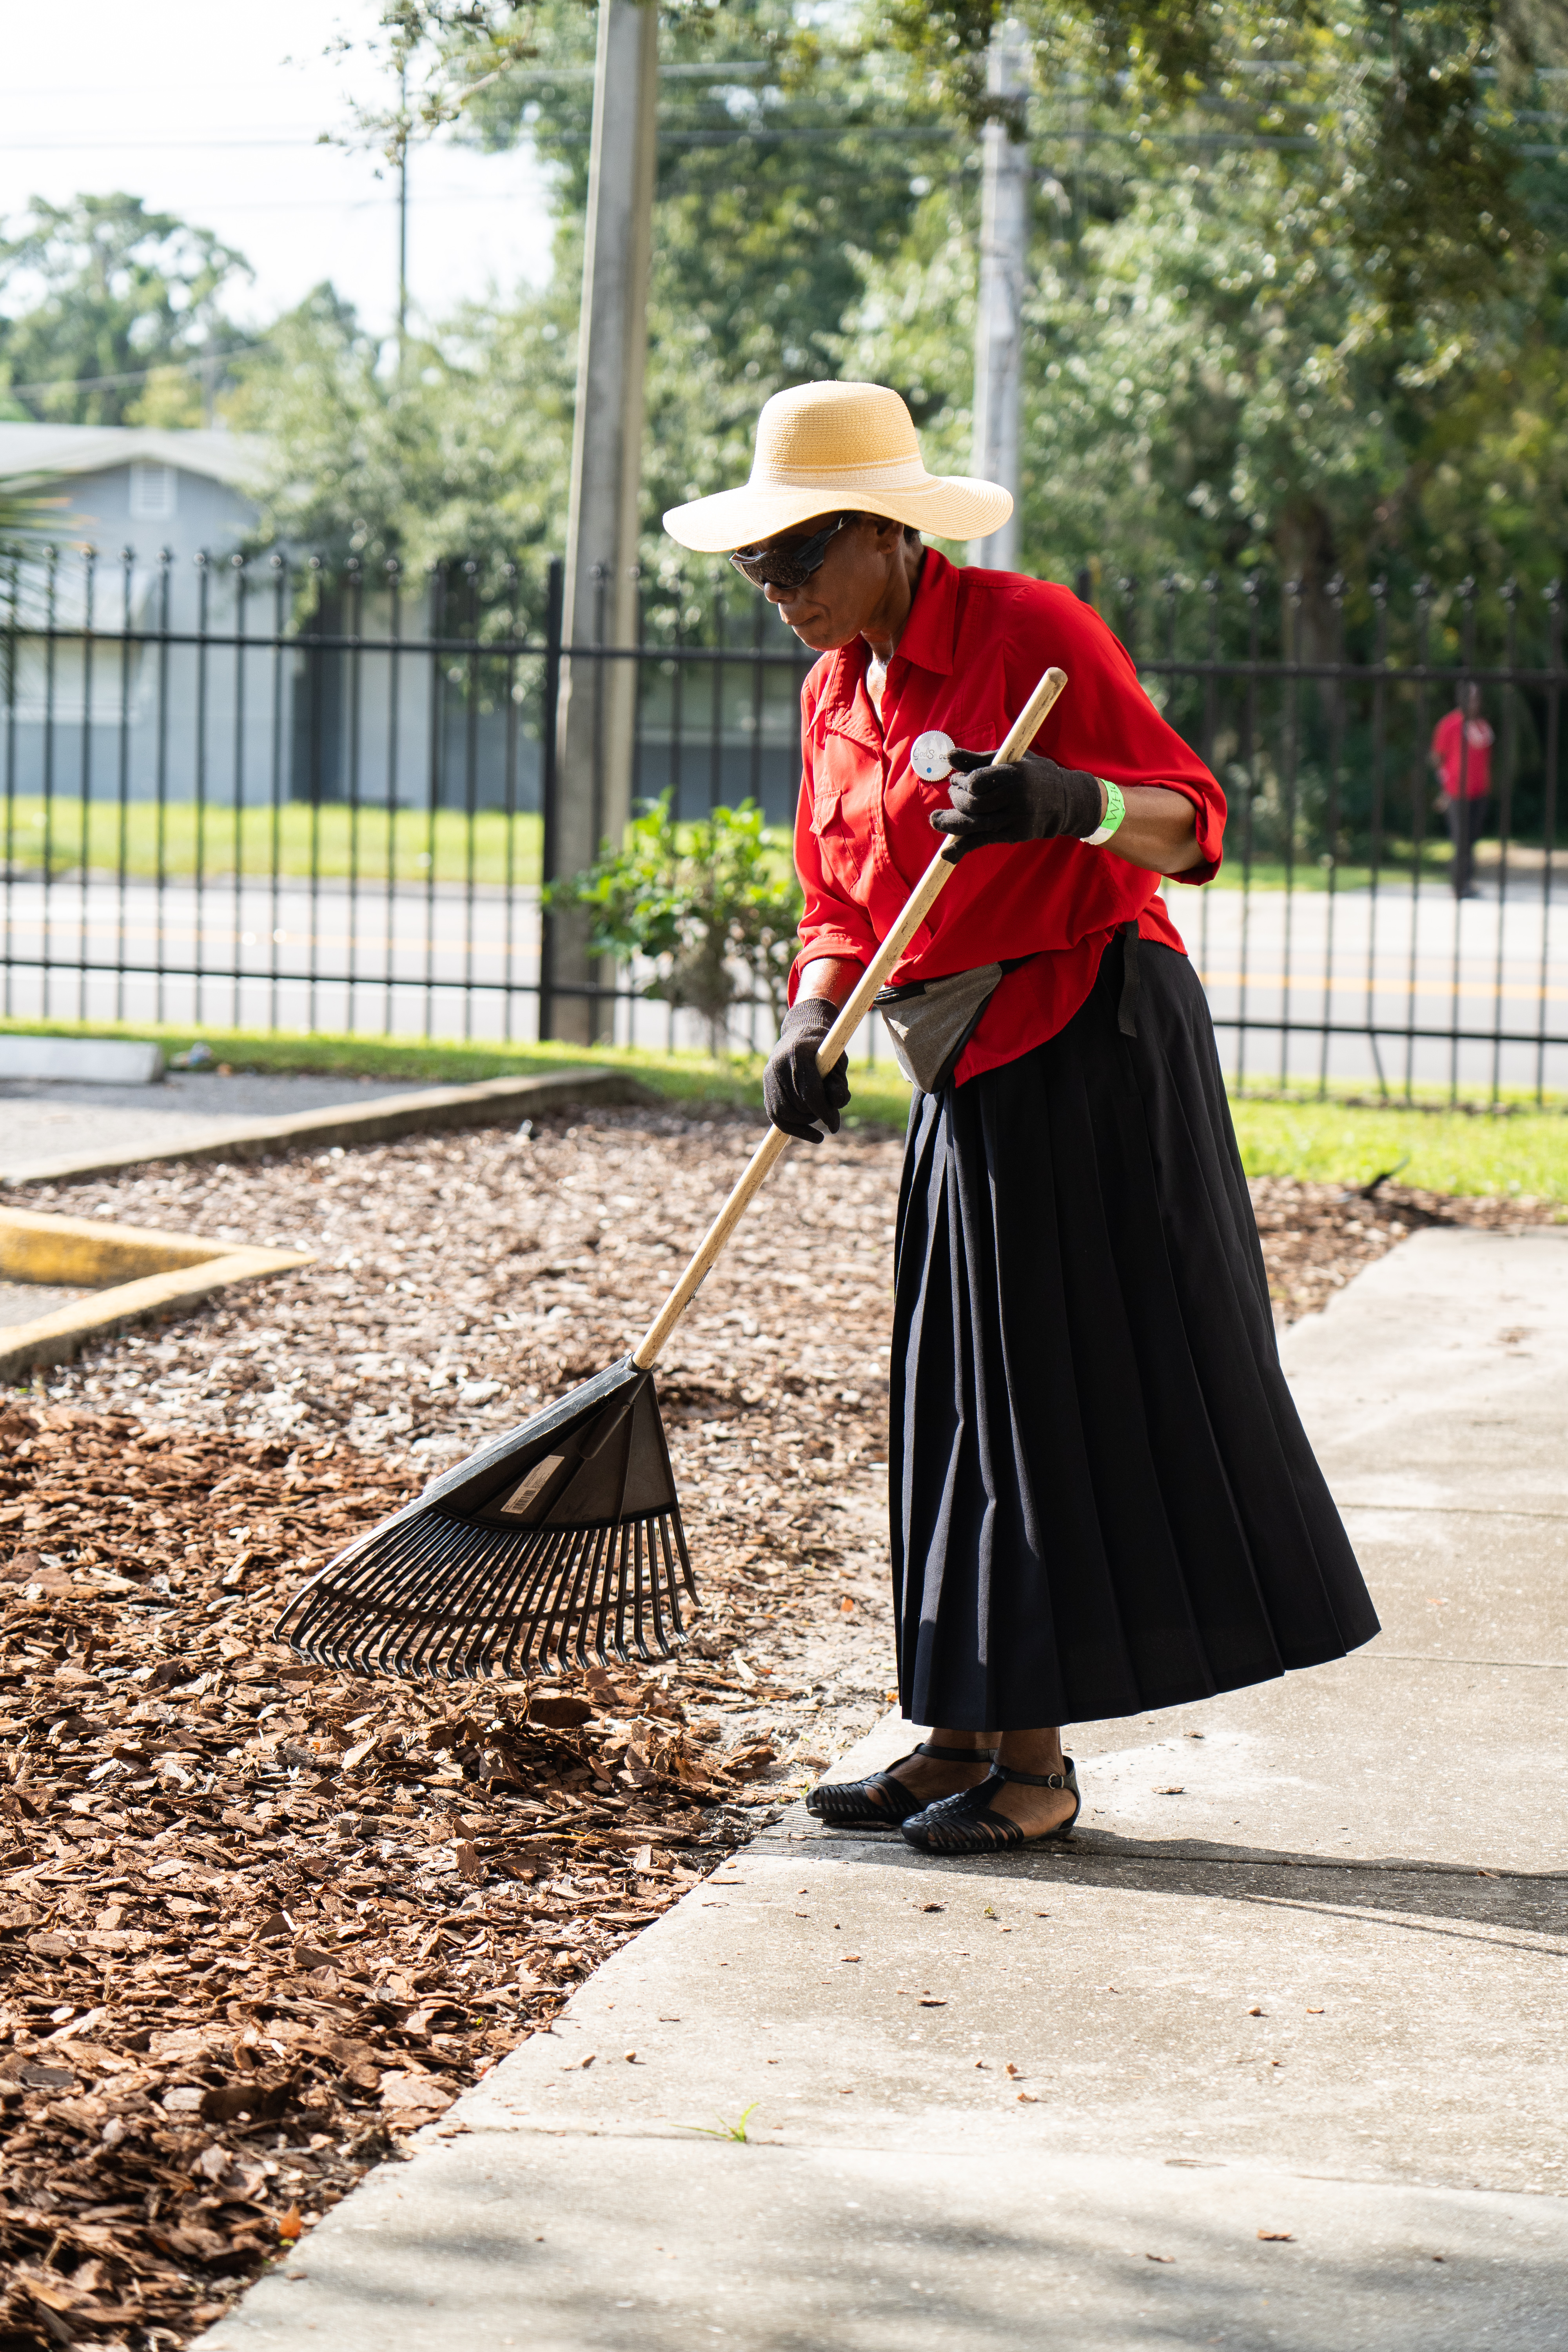 Volunteer arranges mulch on the grounds of the Orlando Union Rescue Mission.